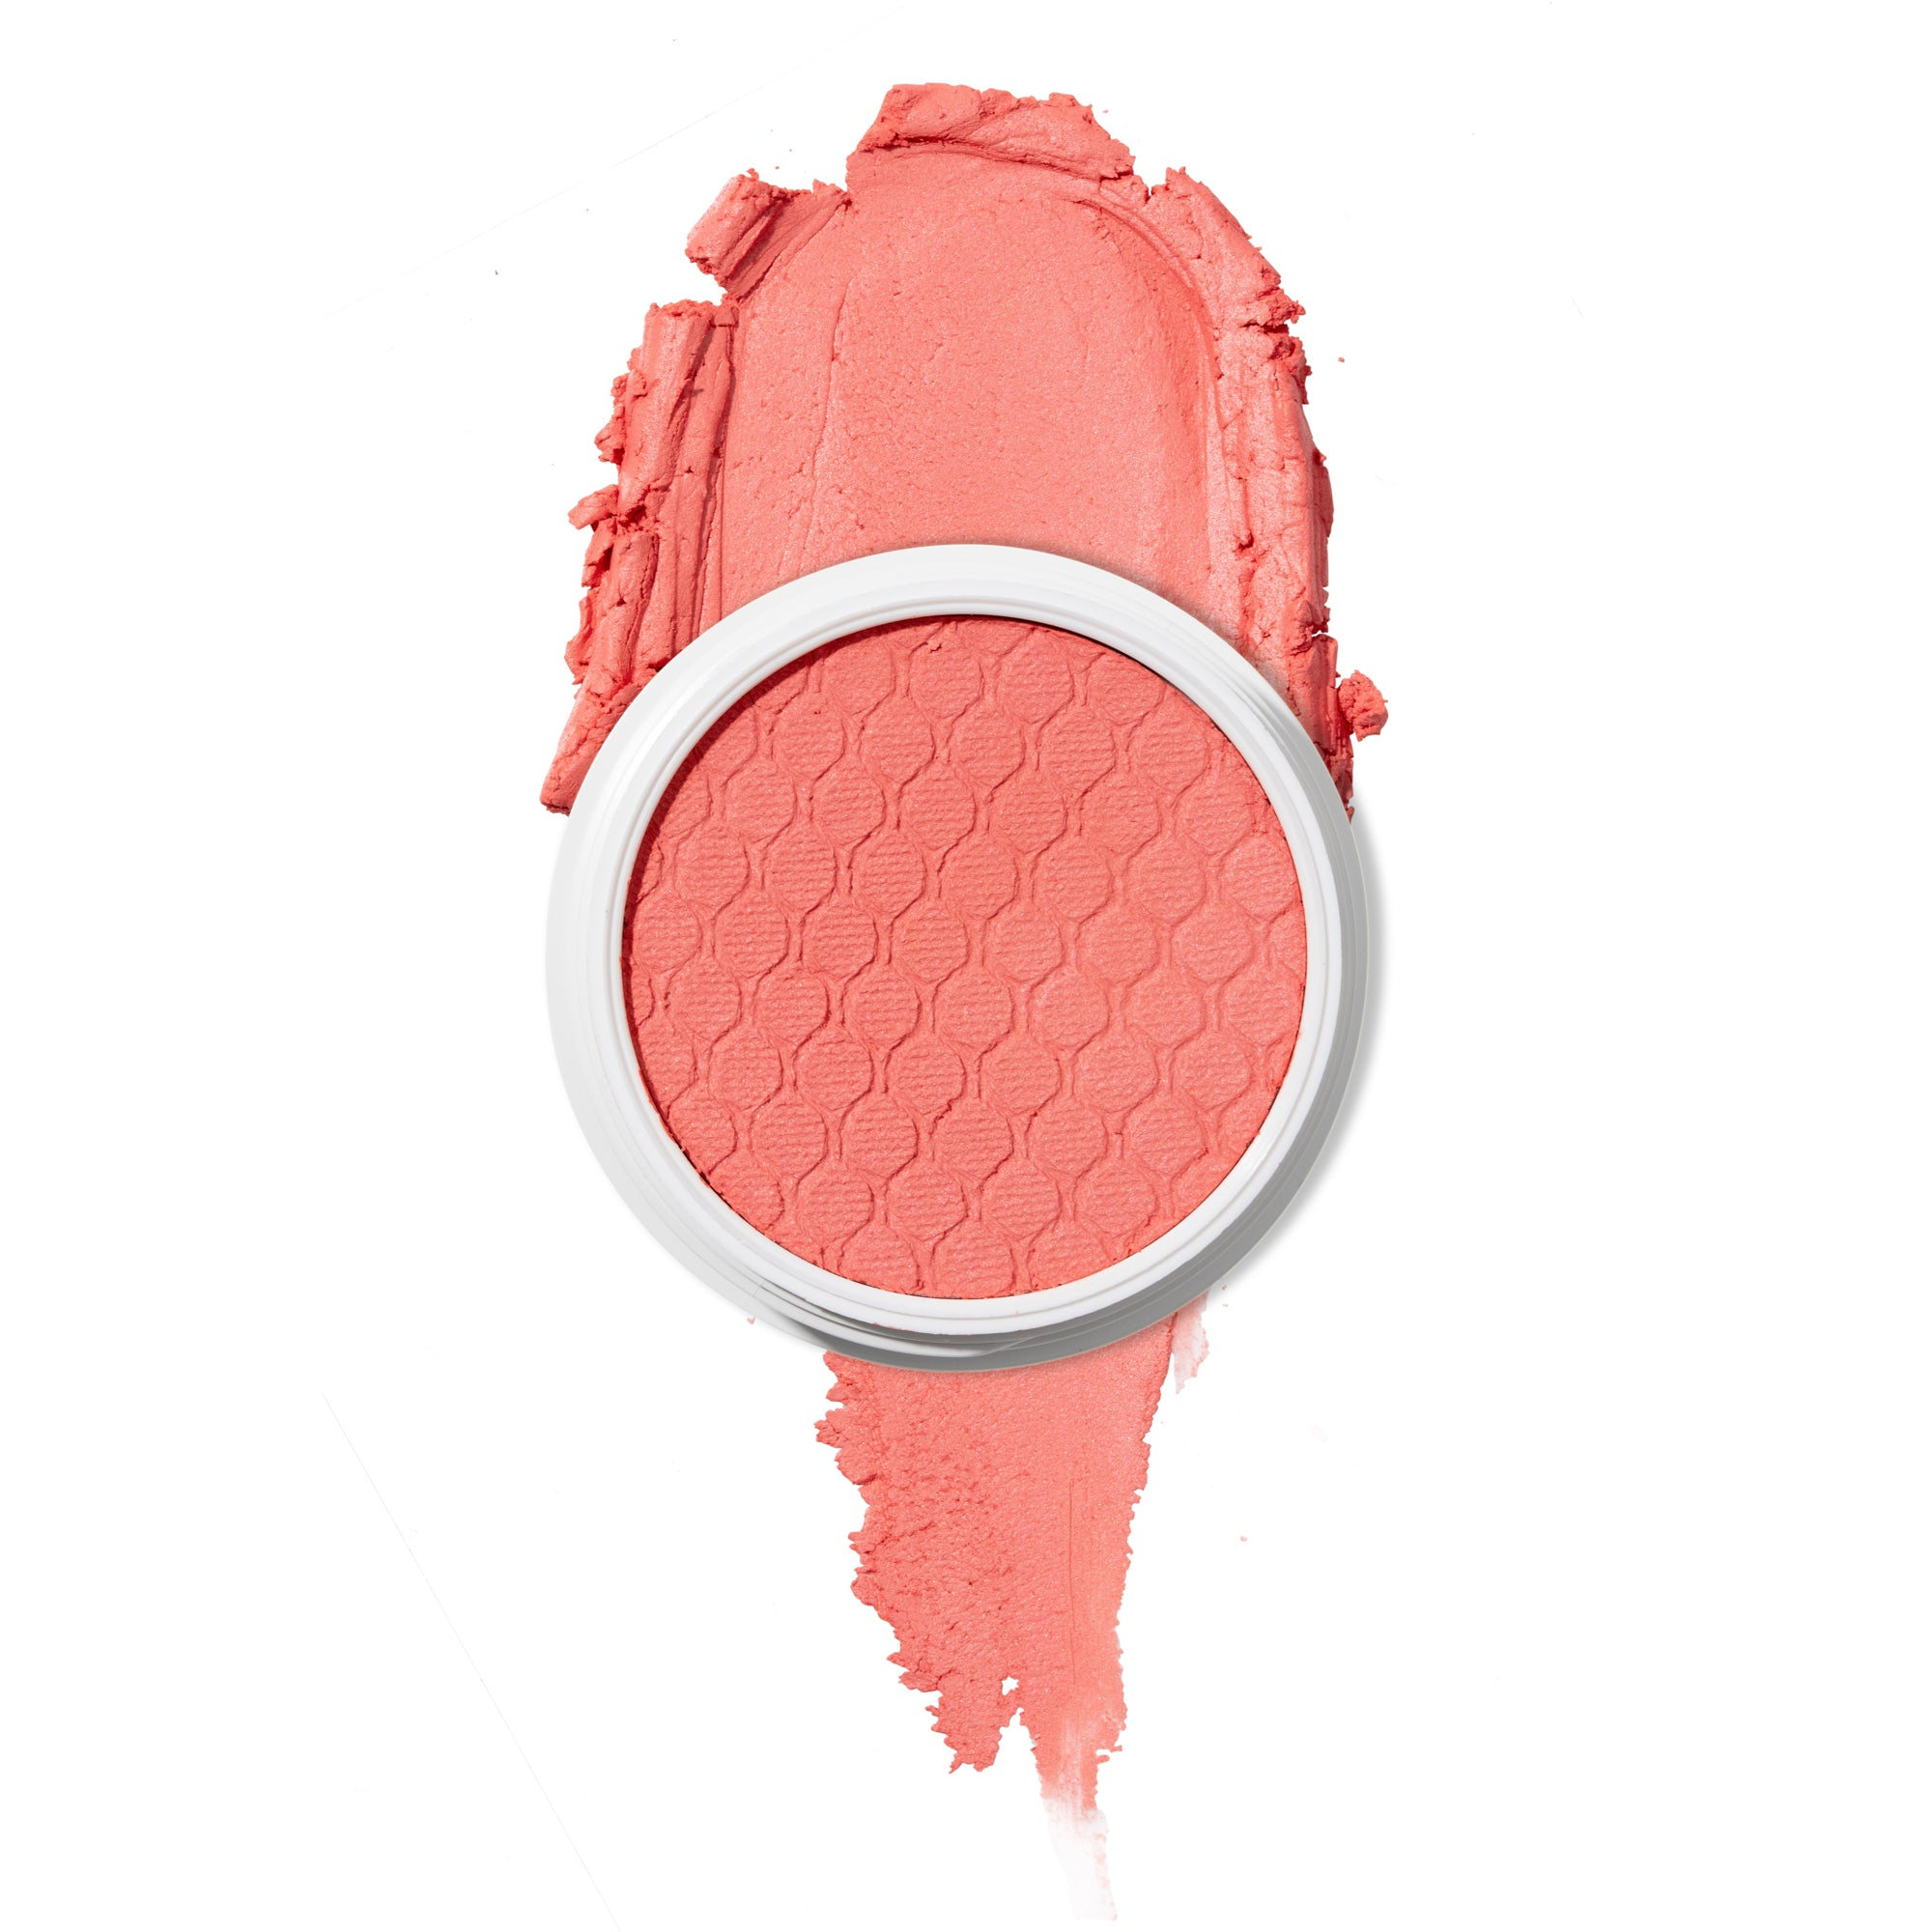 Holiday matte true mid tone peachy pink Super Shock Blush